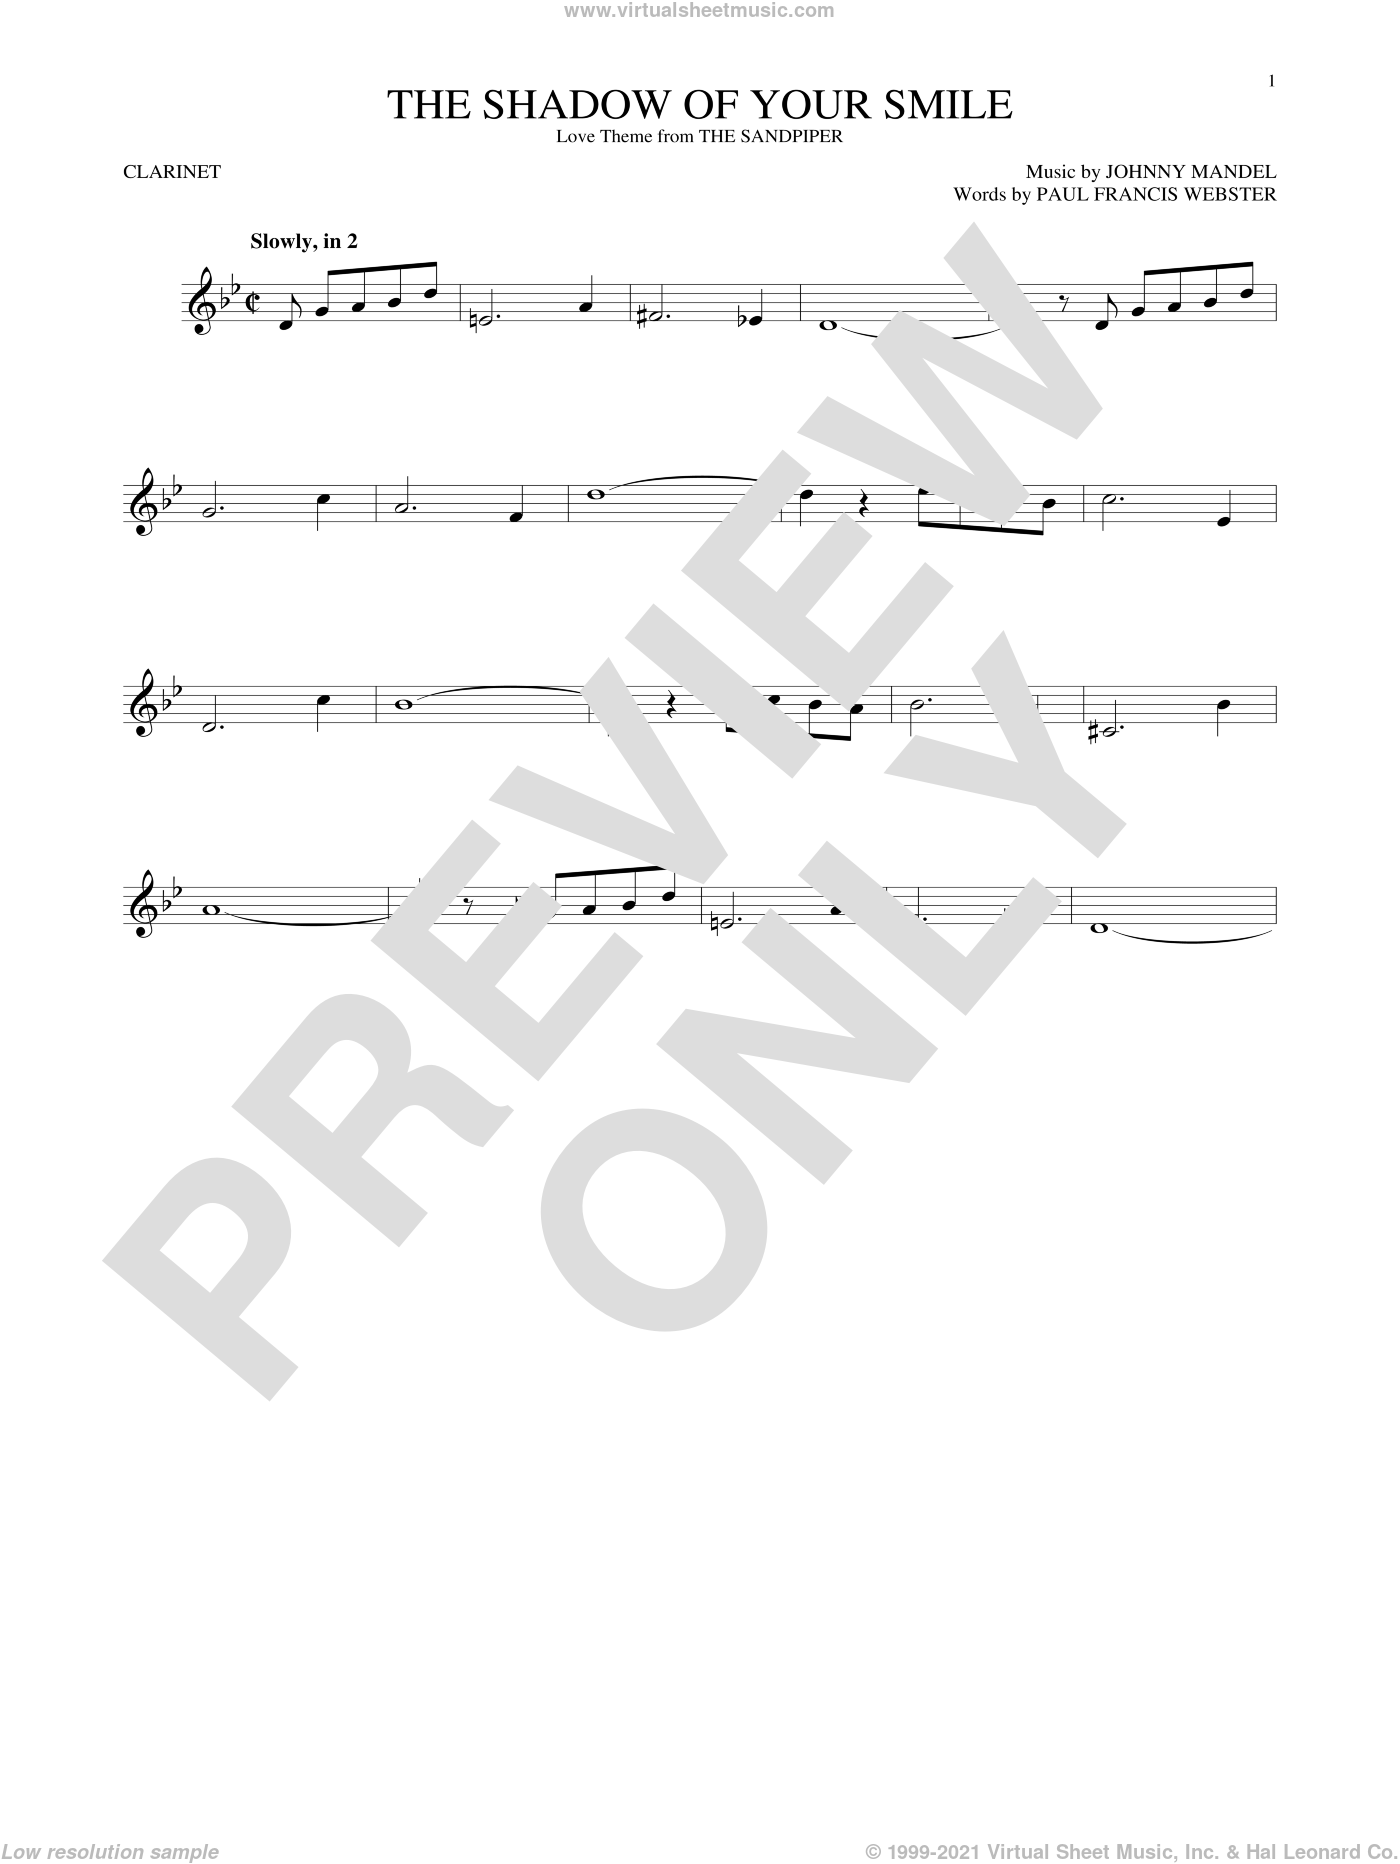 The Shadow Of Your Smile sheet music for clarinet solo by Paul Francis Webster and Johnny Mandel, intermediate skill level